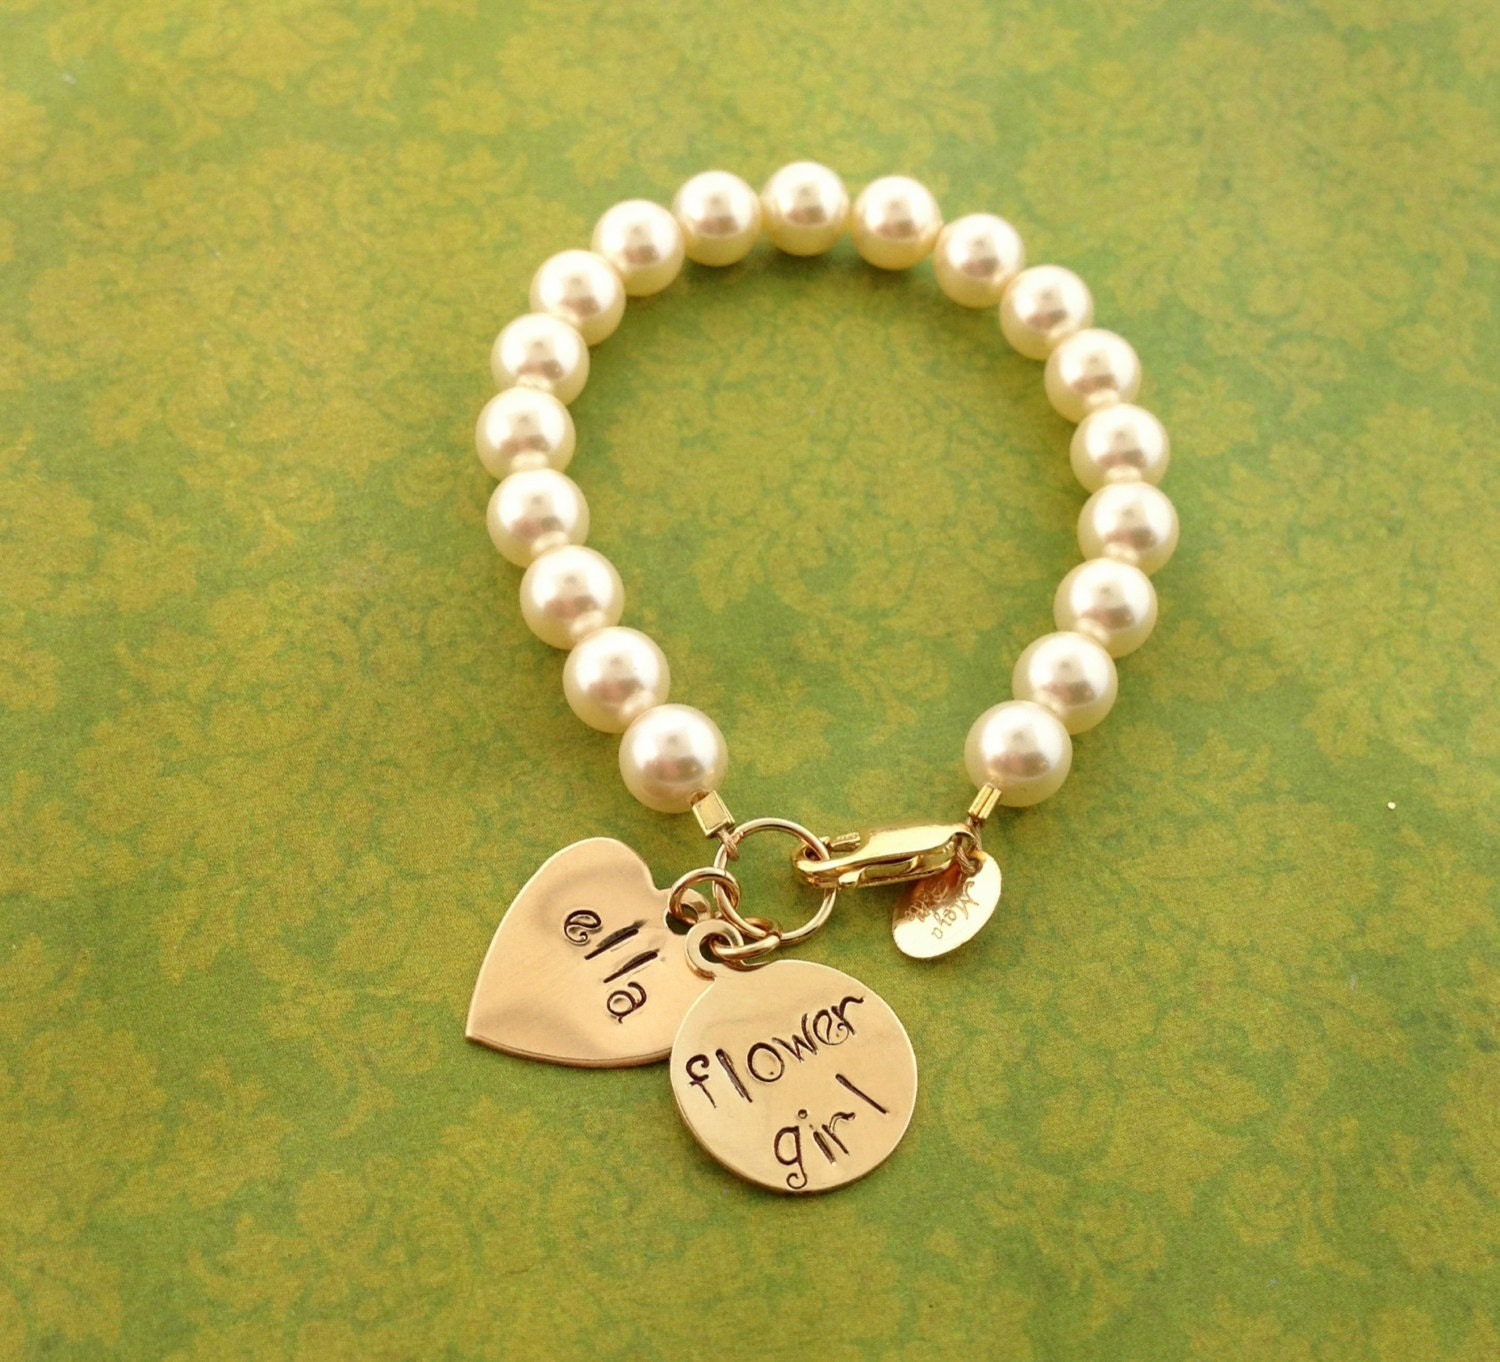 Wedding Gift Jewelry : Flower girl bracelet flower girl jewelry wedding gifts